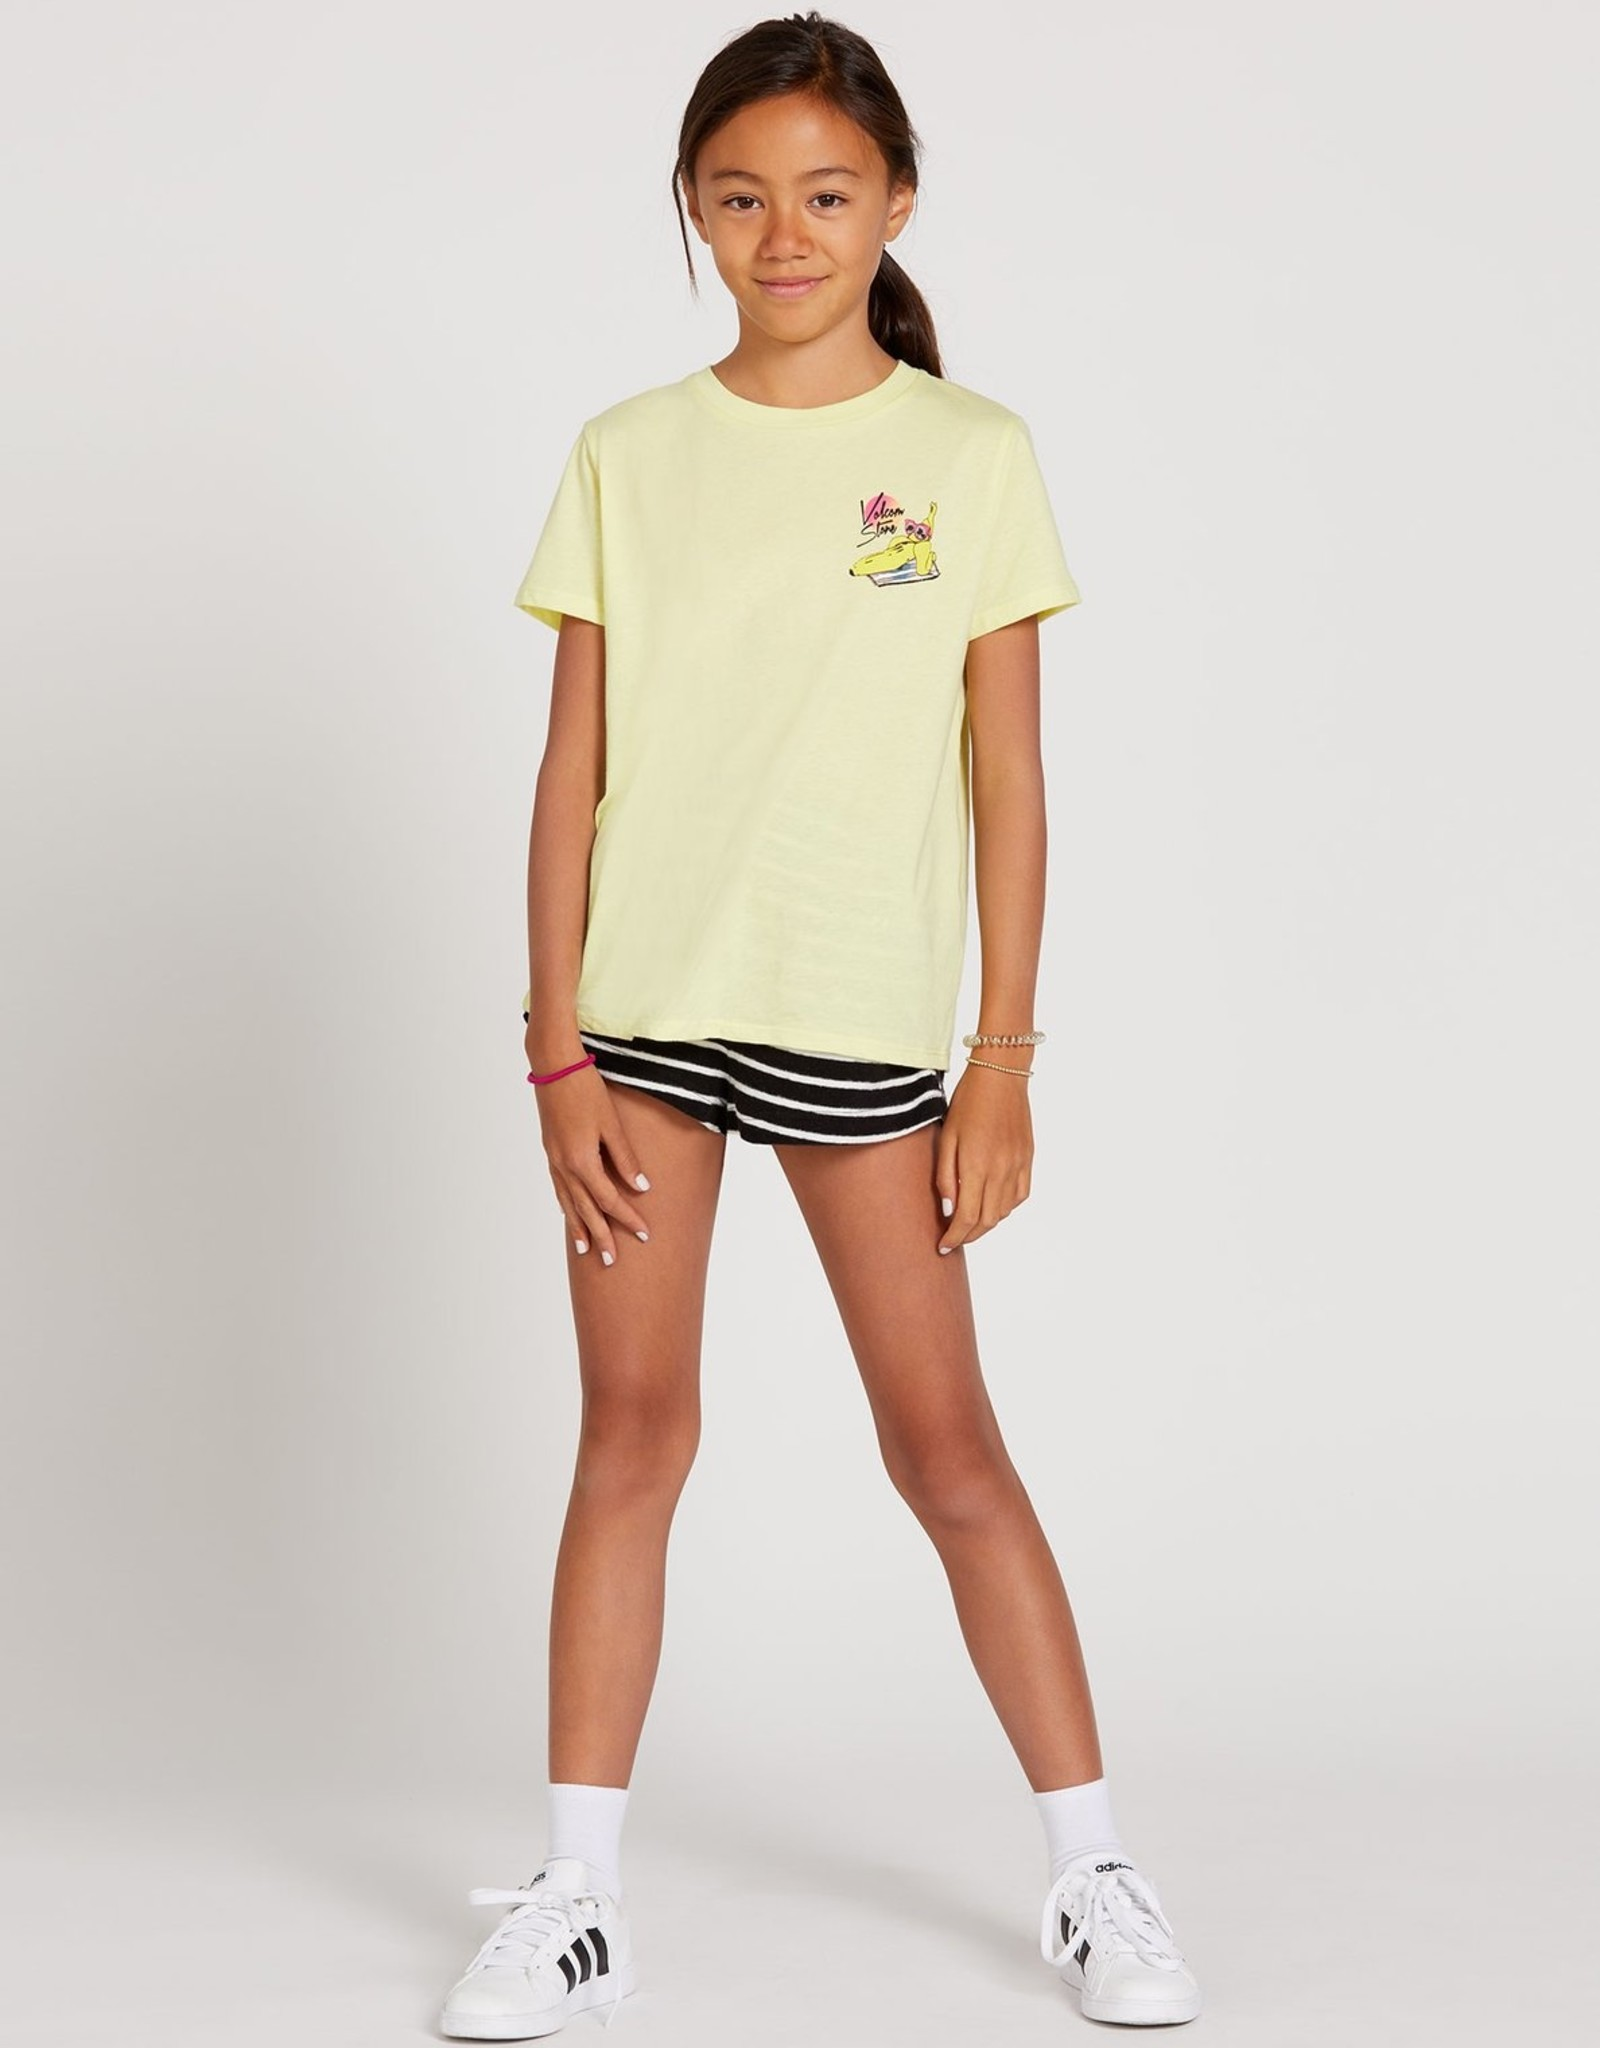 Volcom SP21 G State of Mind Yellow